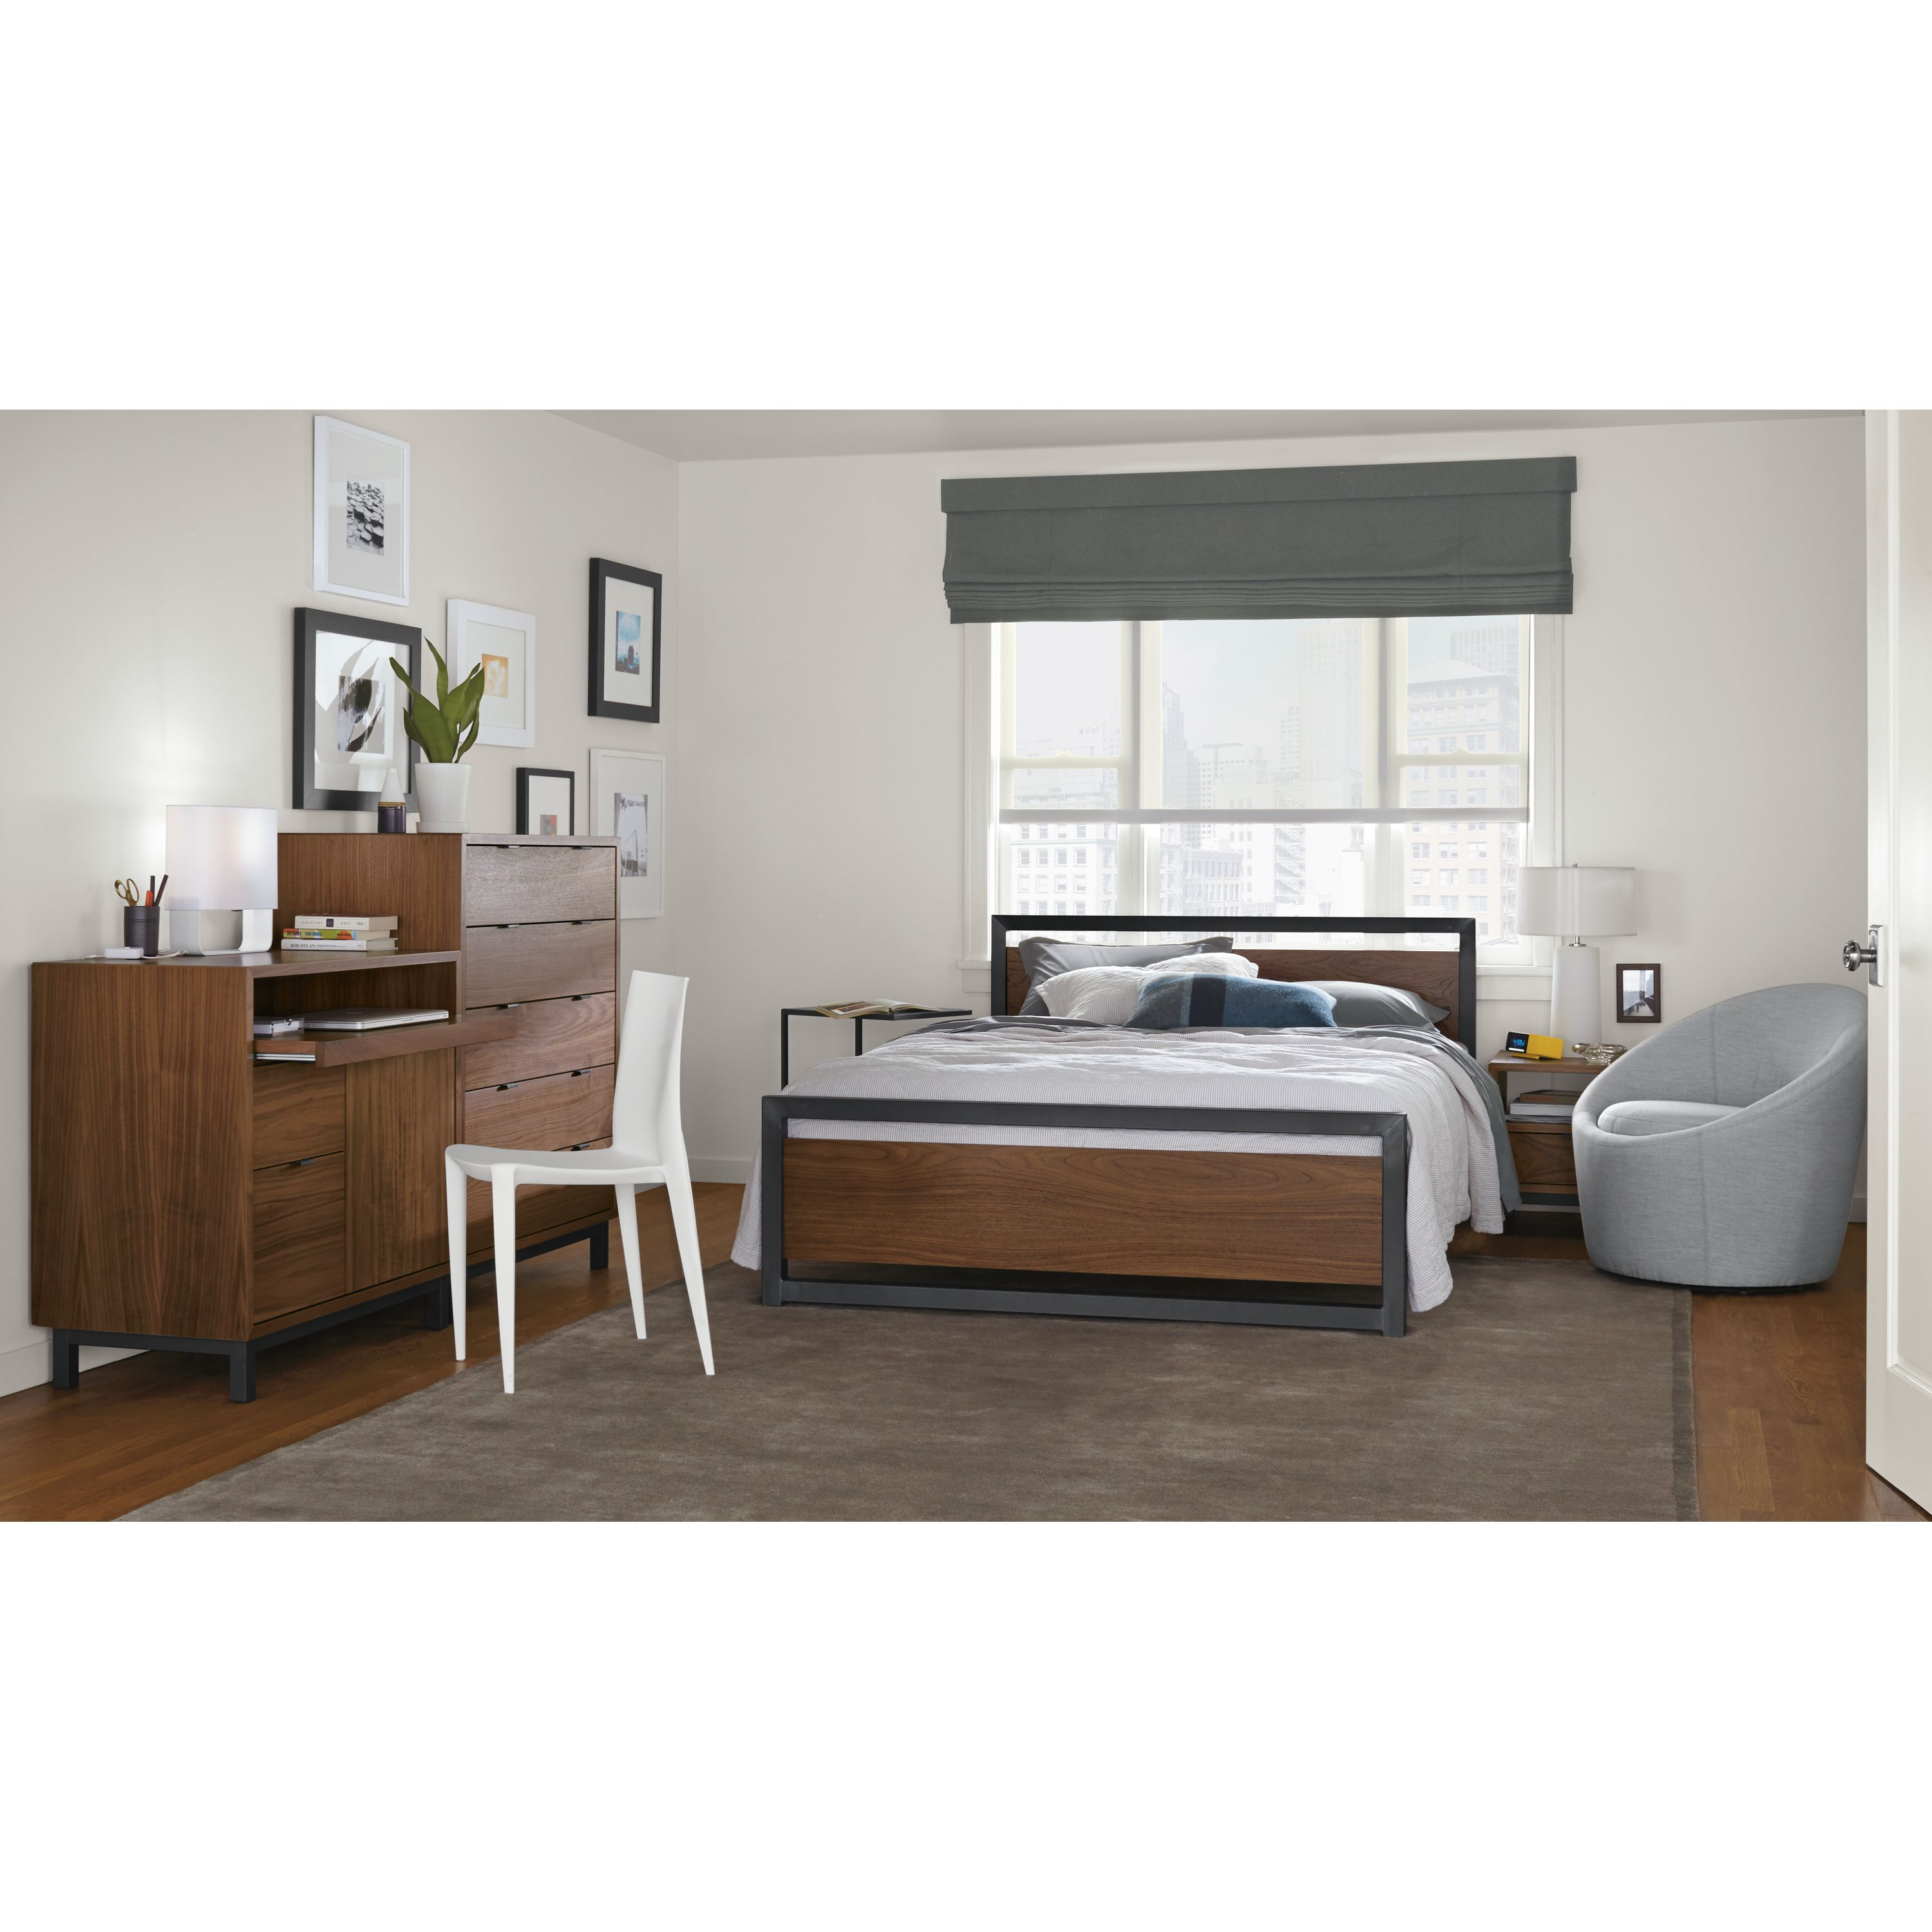 Room & Board | Piper Wood Panel Bed in Natural Steel ...